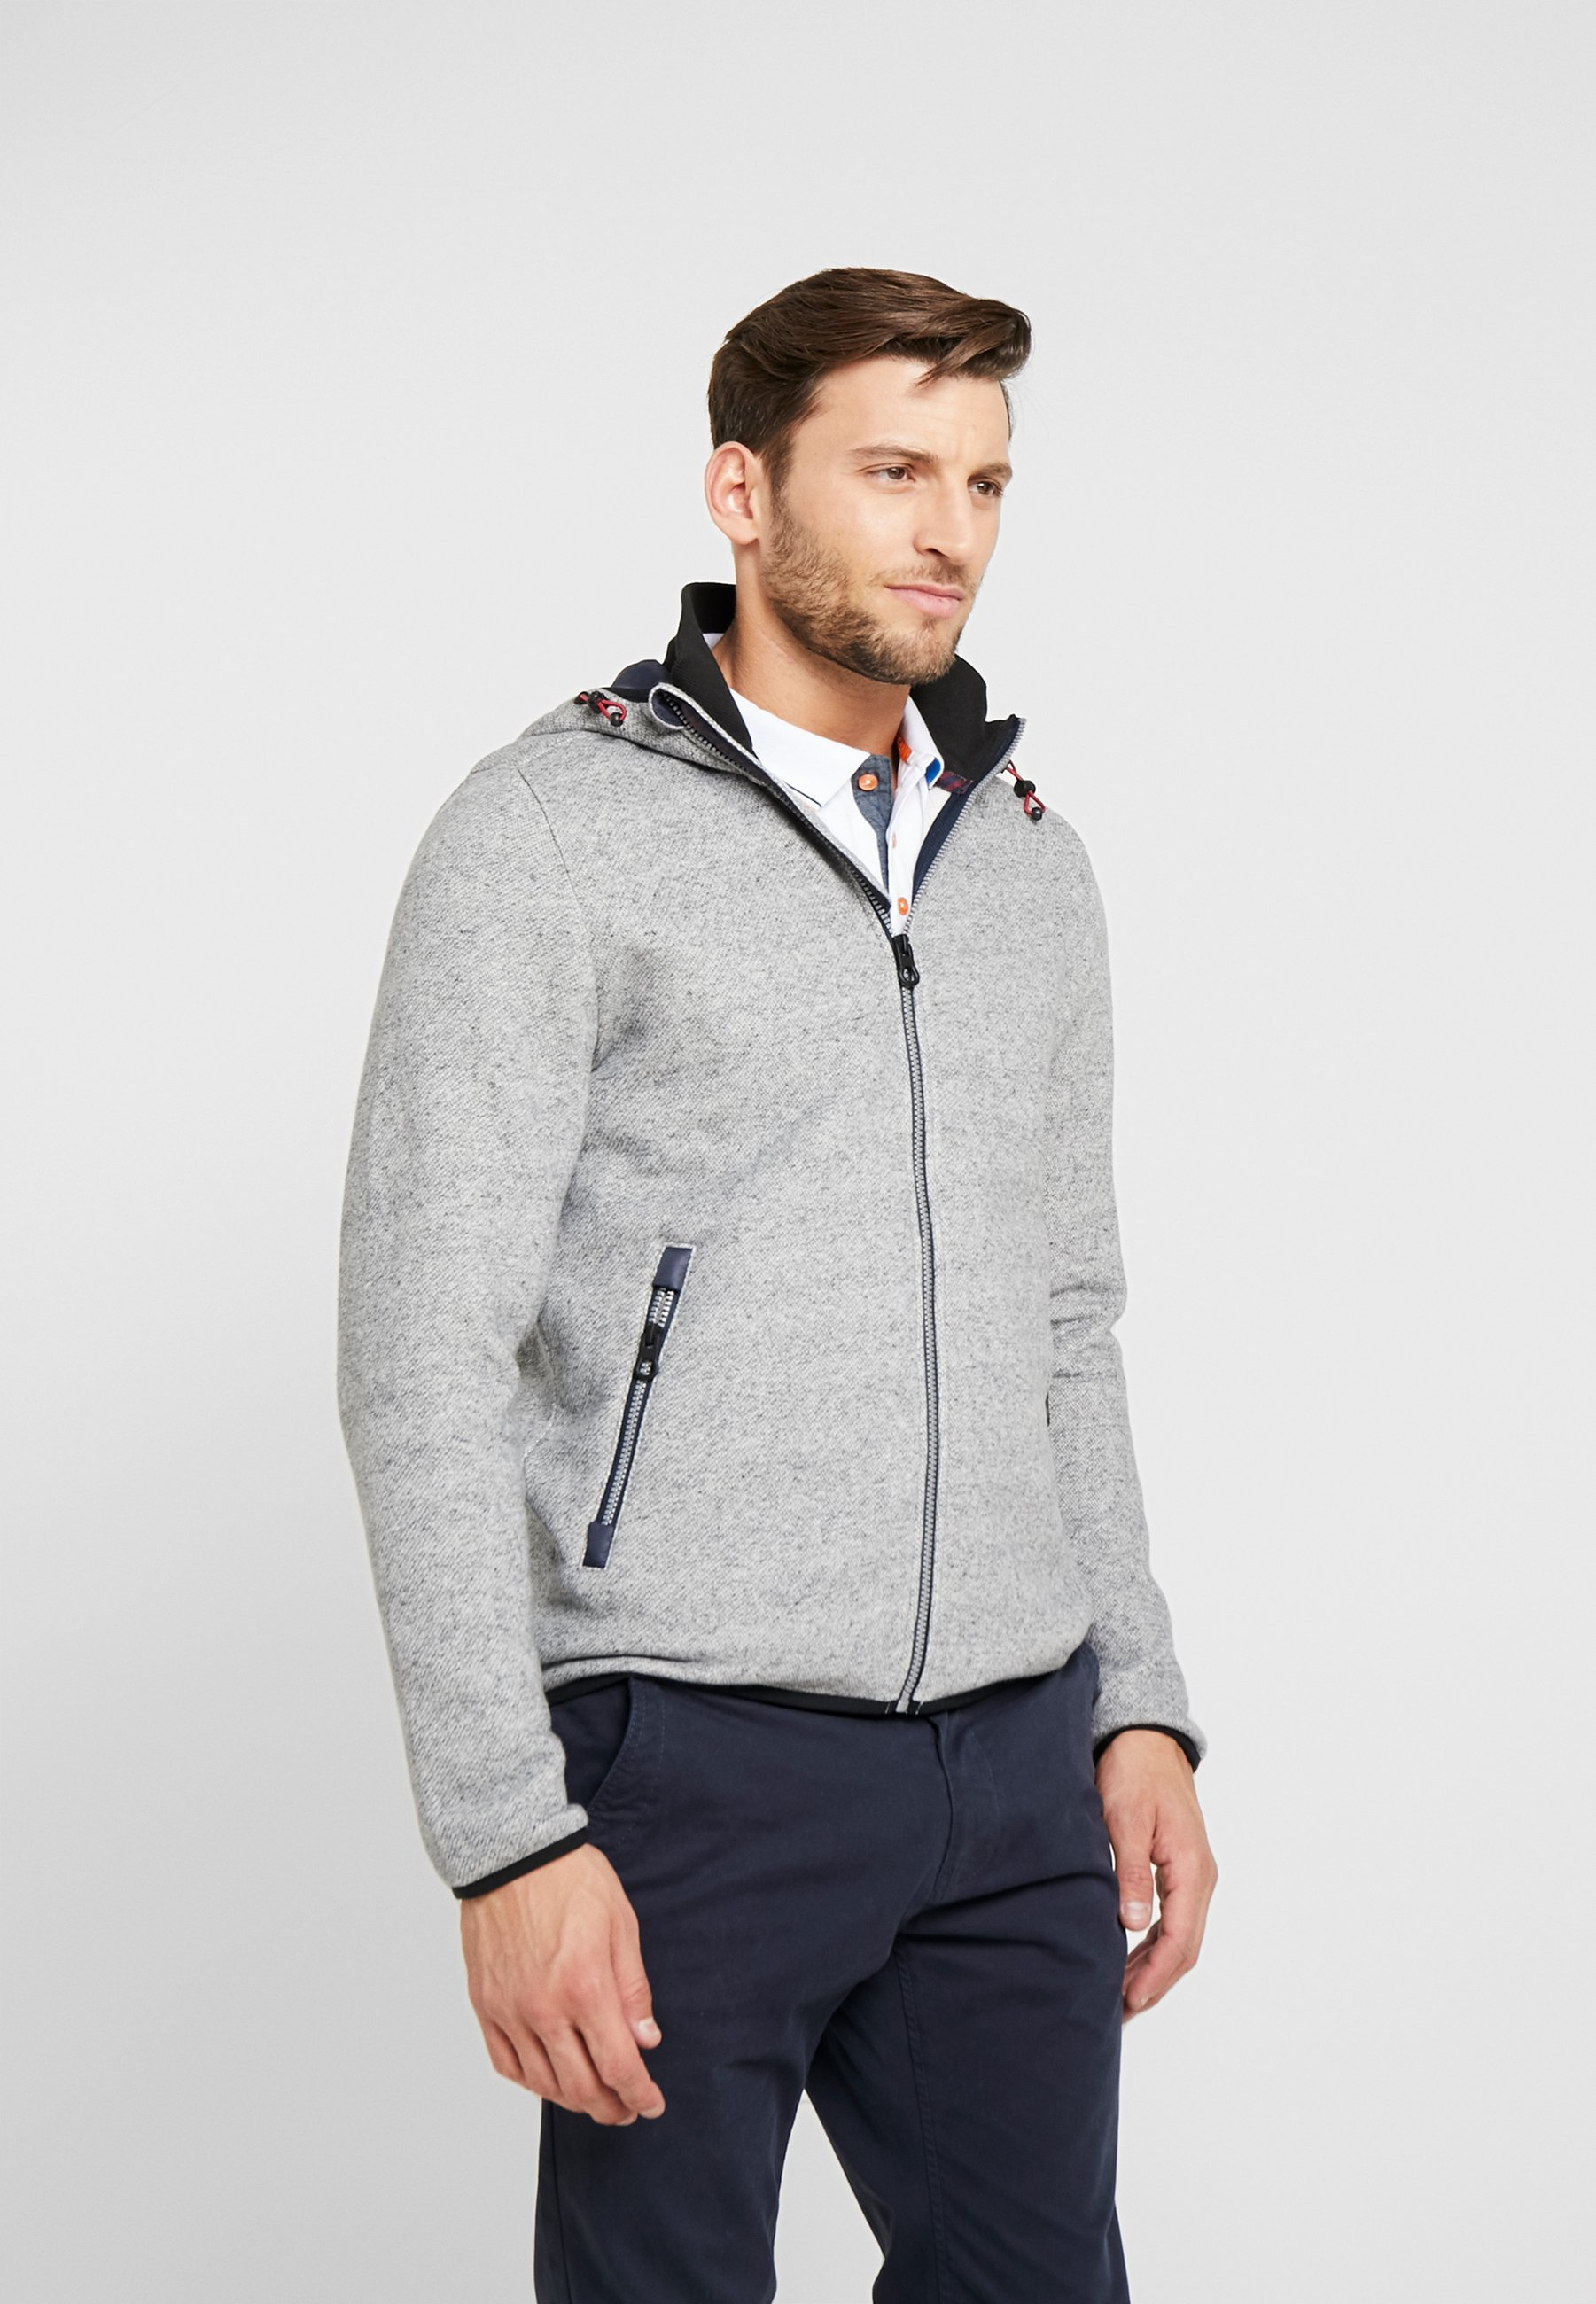 Sweat Tom Blue Zippée Tailor Technical Melange HybridVeste En Grindle dCsxtQhr